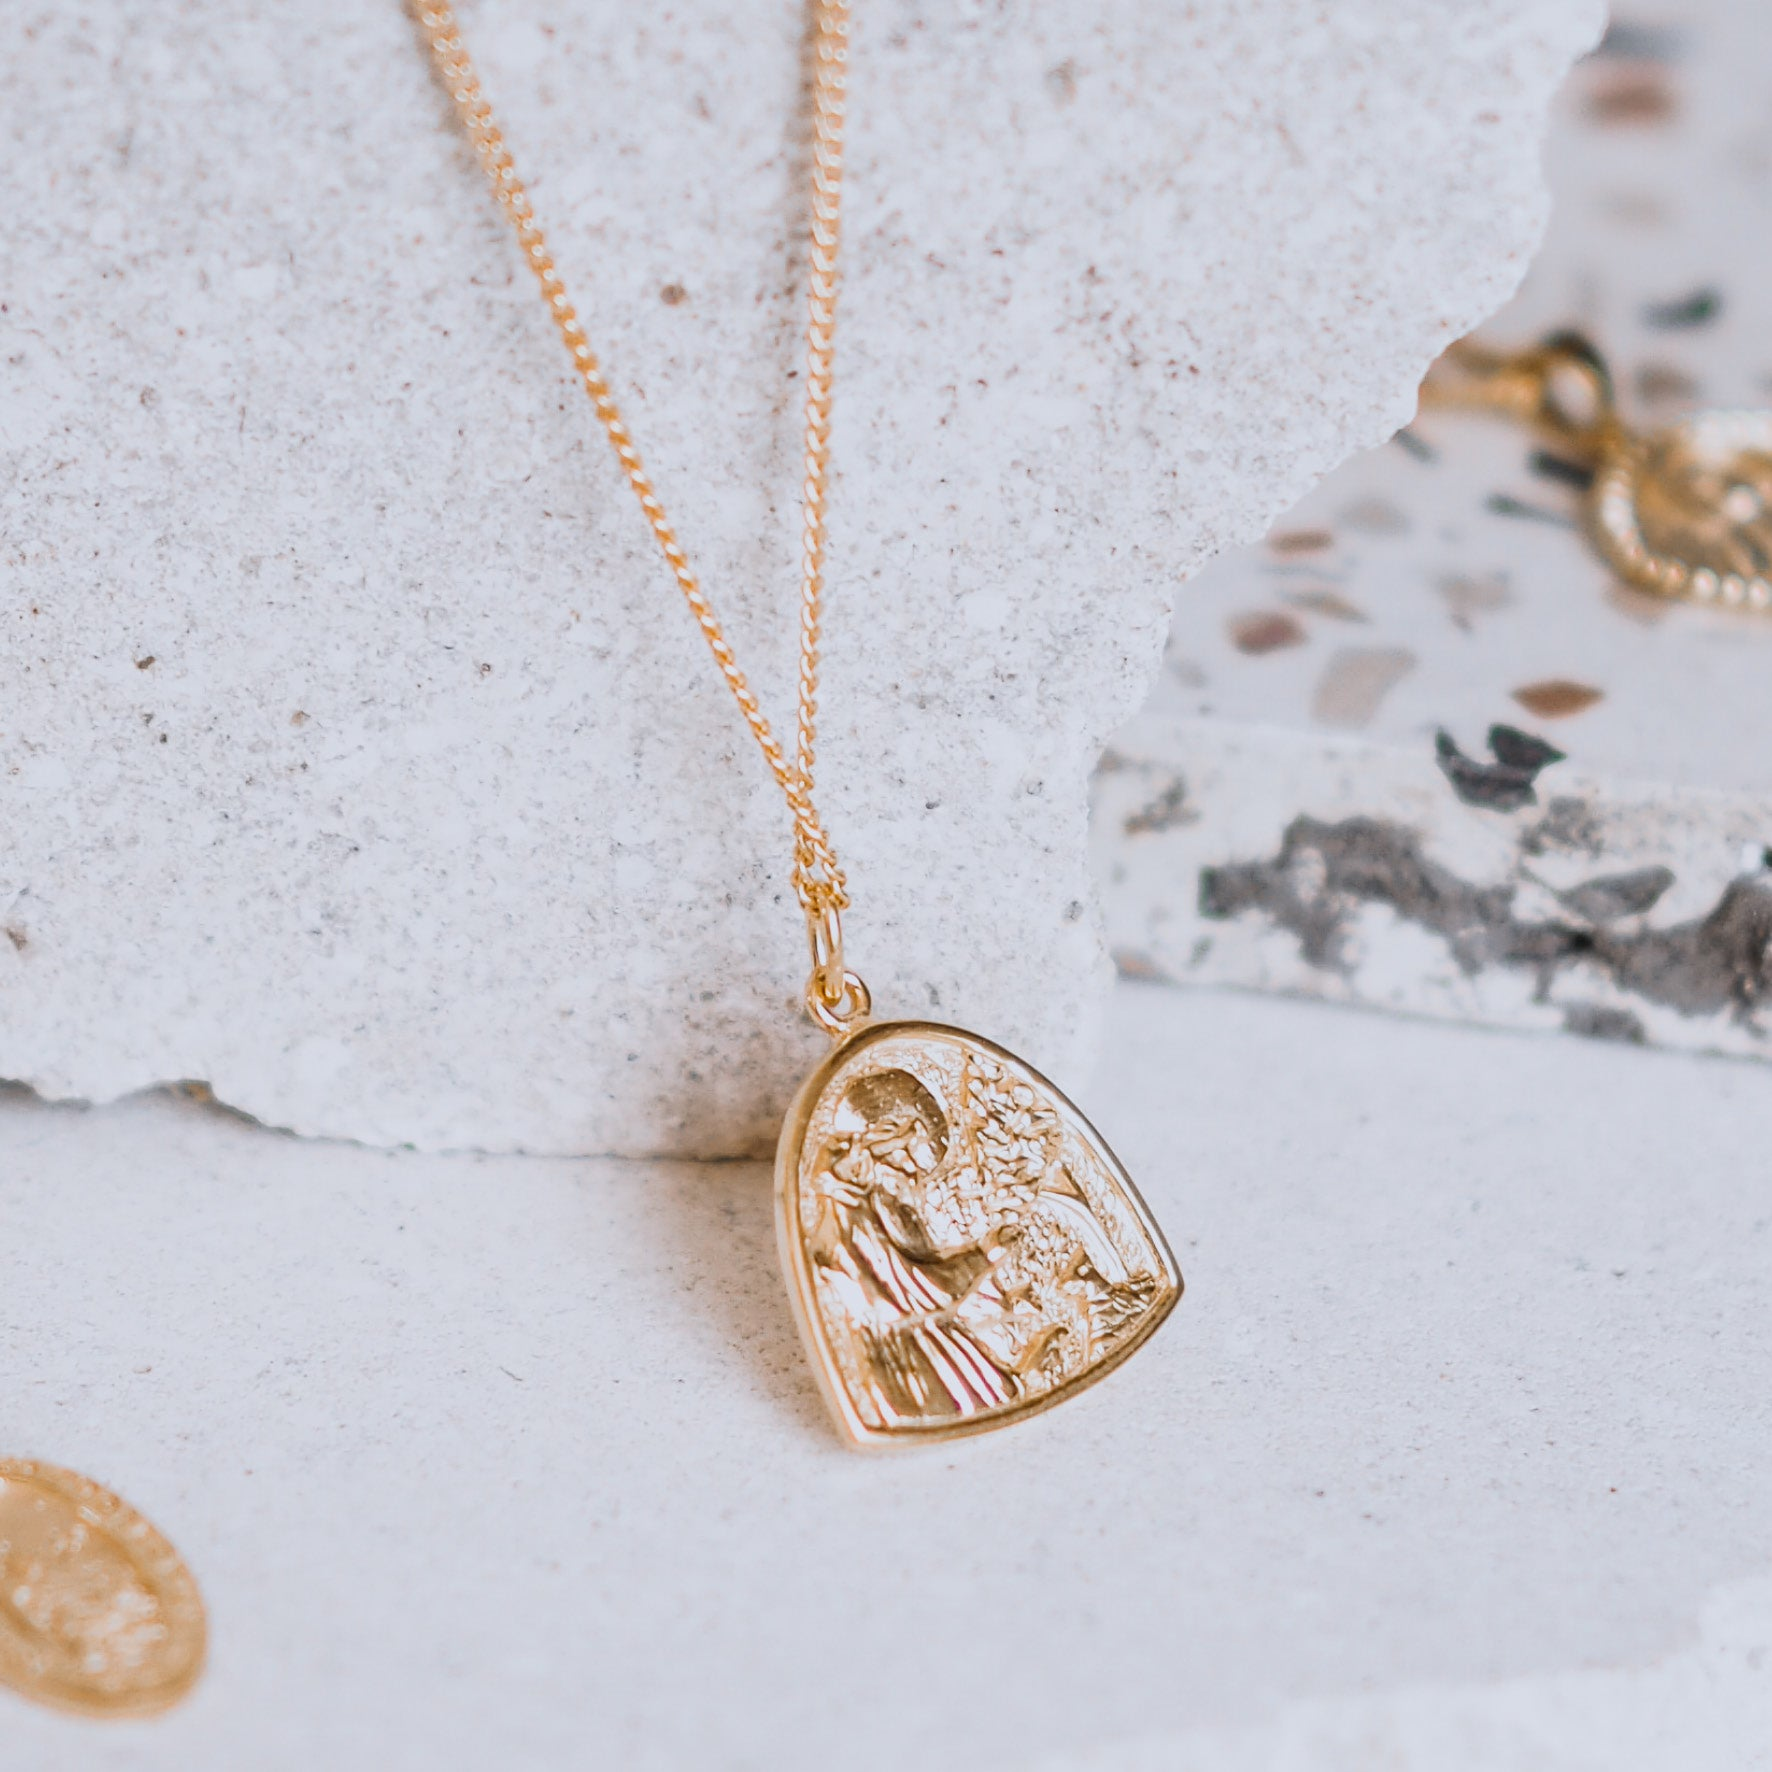 SOLID GOLD - St Assisi - Patron Saint of Animals & the Environment Necklace